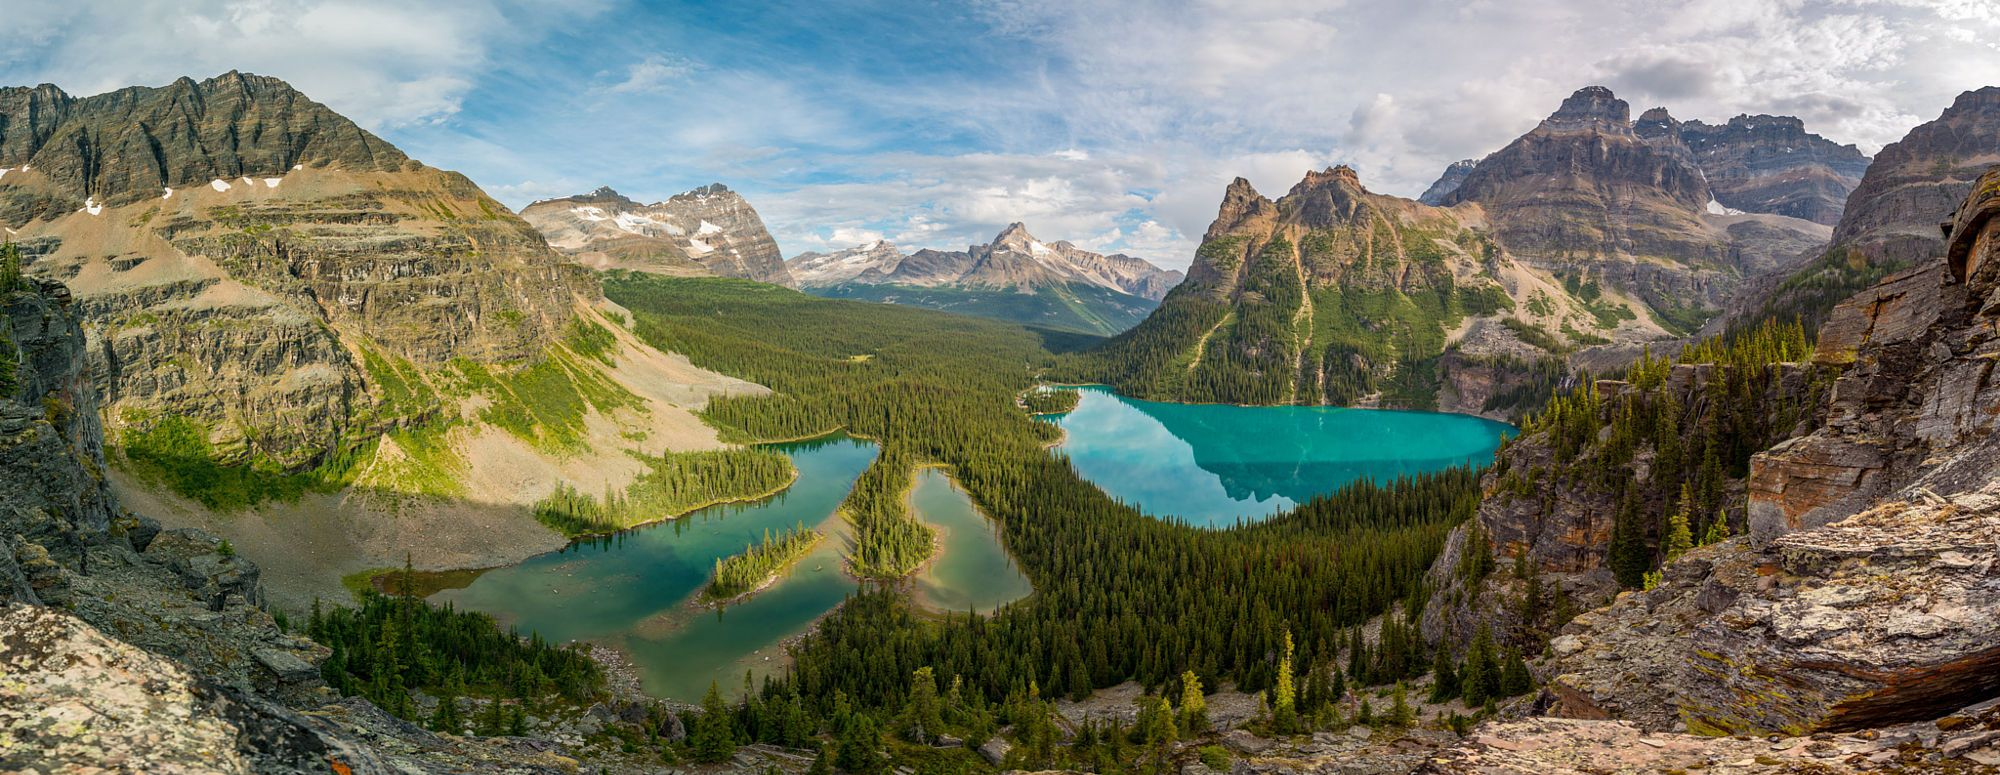 Lake O'Hara by Manuel Secher on 500px